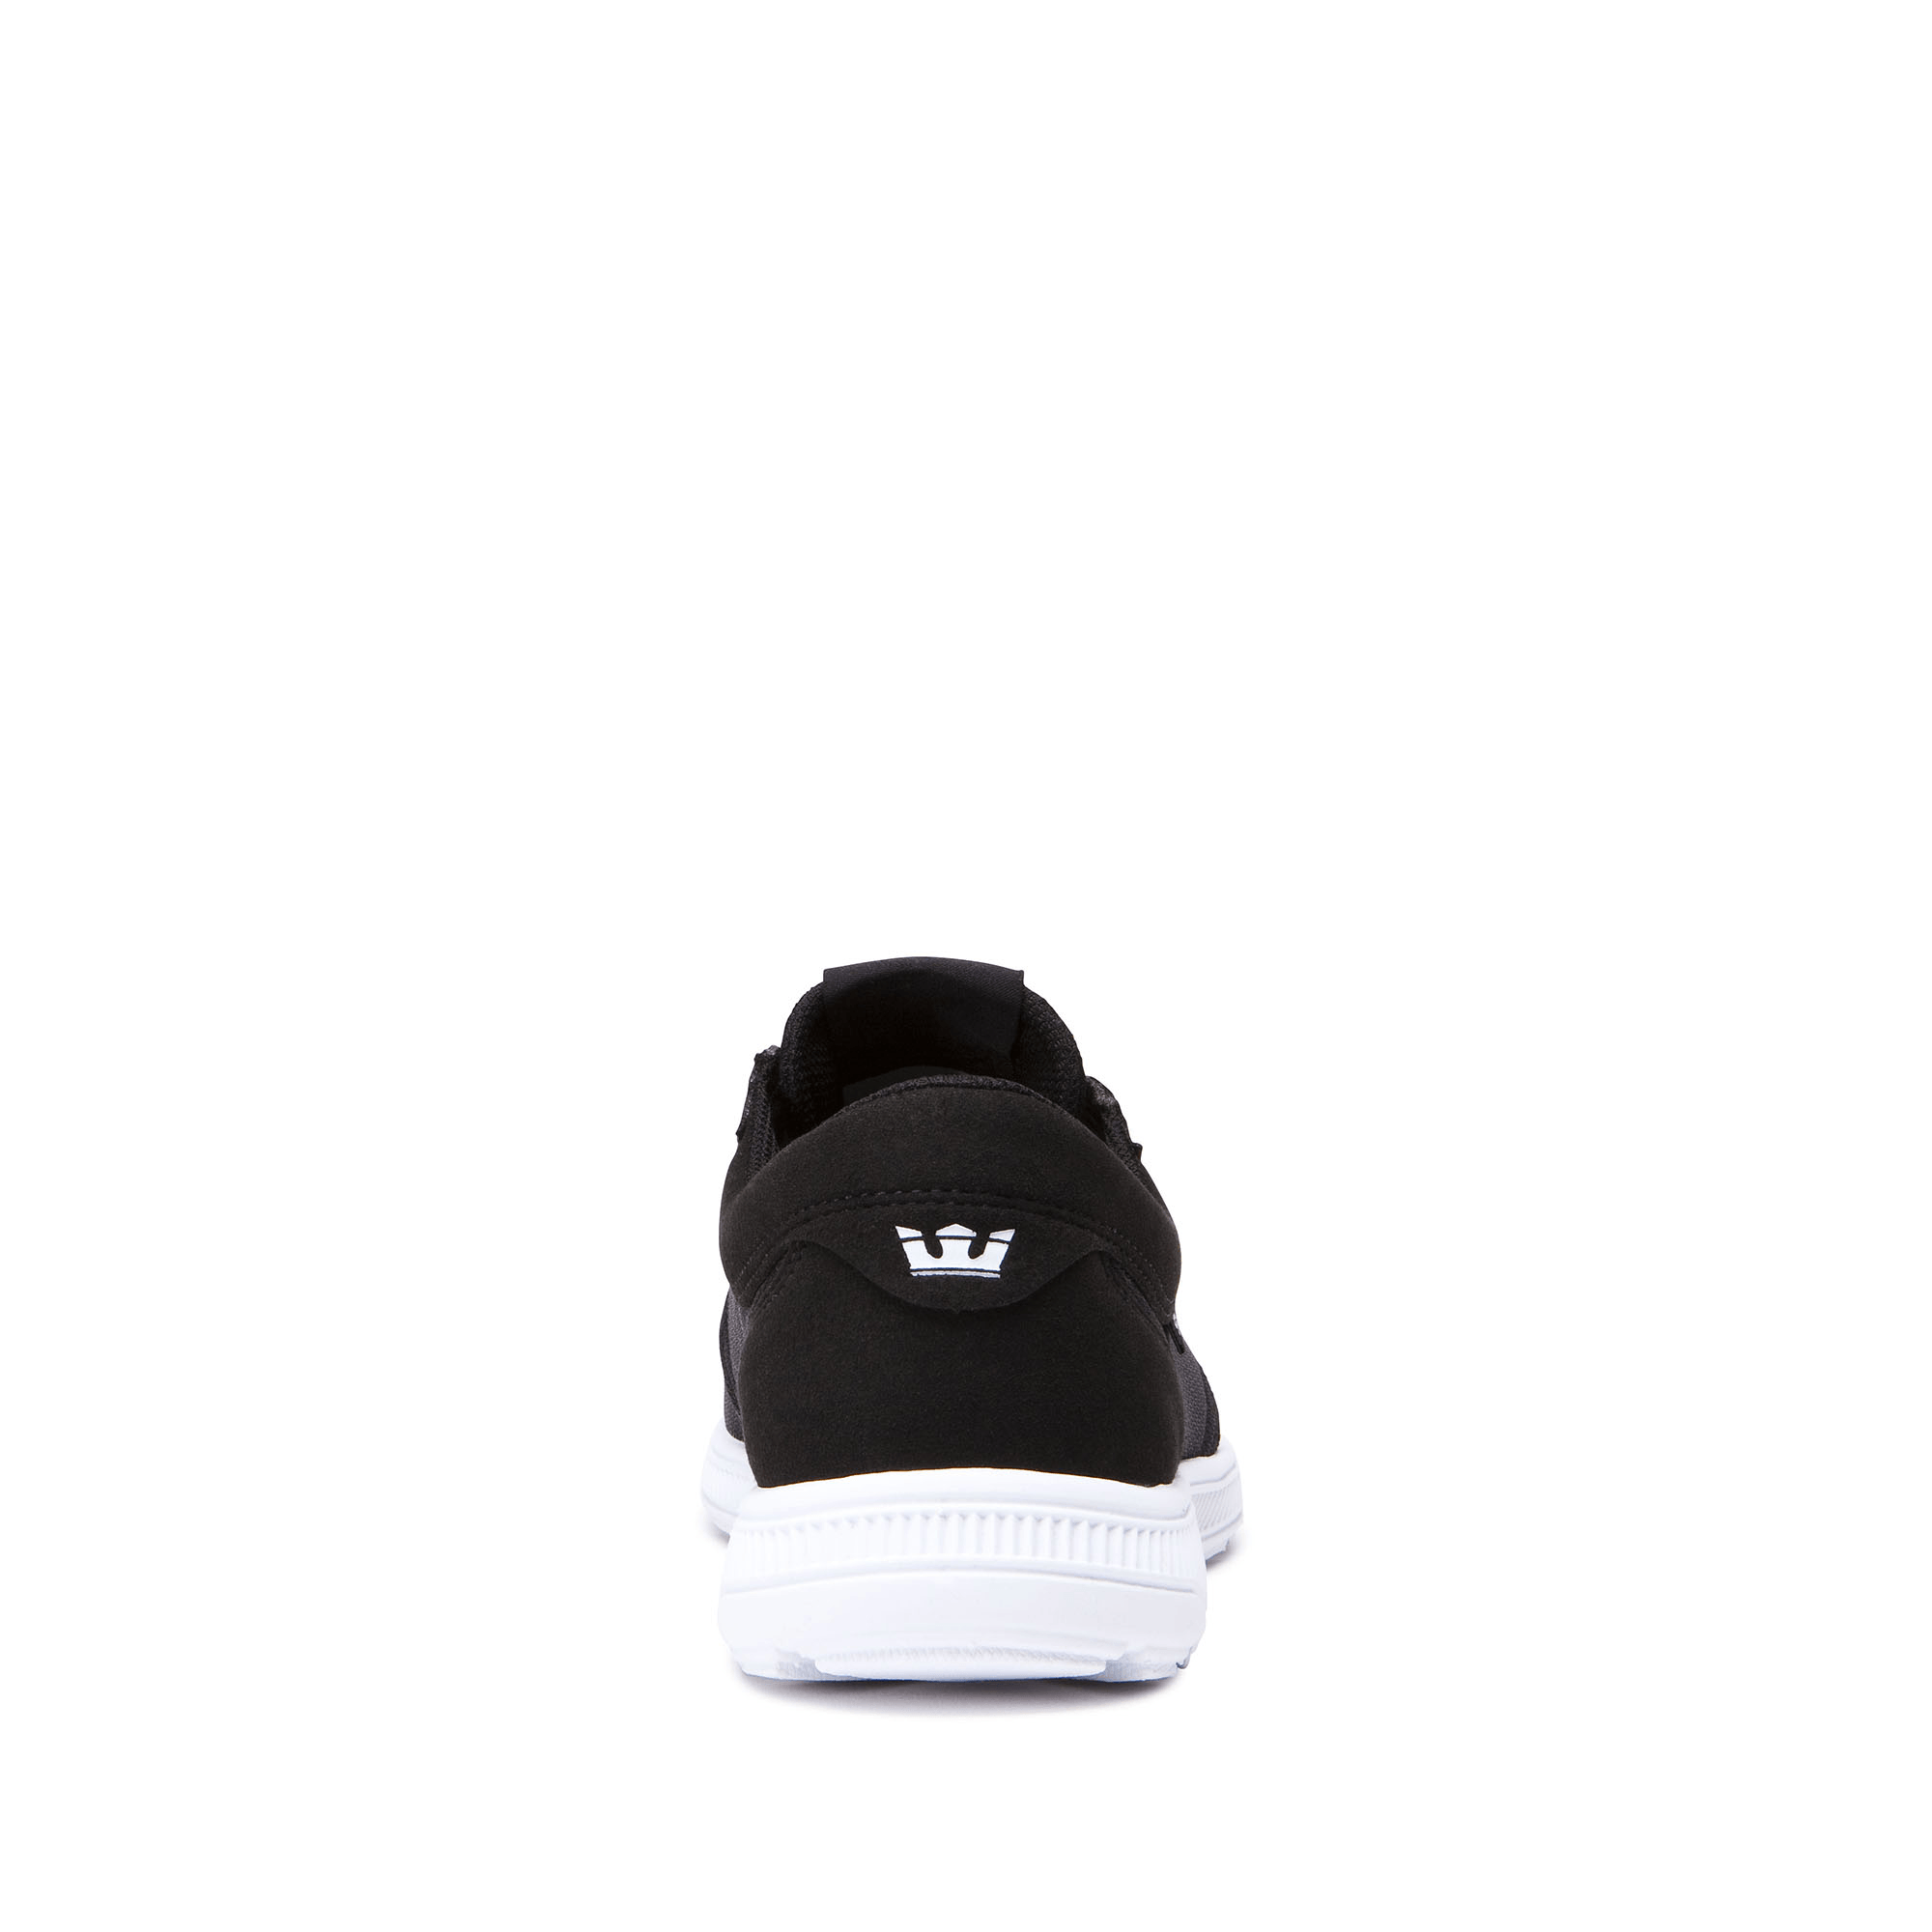 SUPRA Hammer Run Shoes Black White White c6ed5bb694